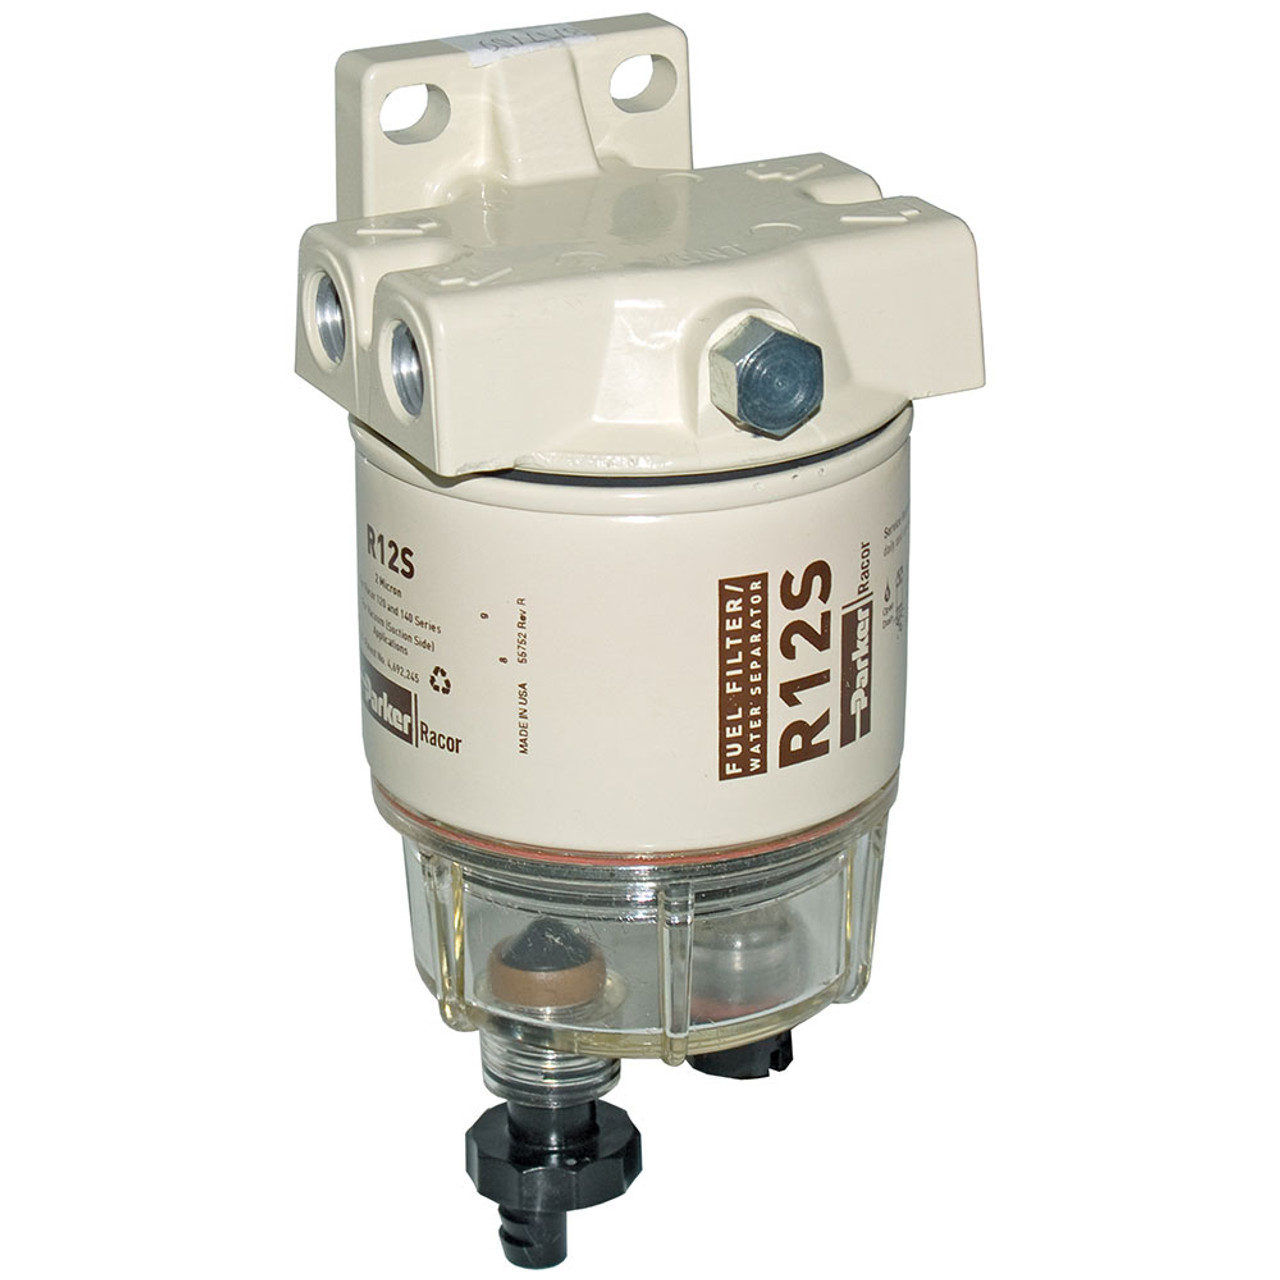 Racor 120A Low Flow Fuel Filter/Water Separator Filter Assembly - 2 Micron